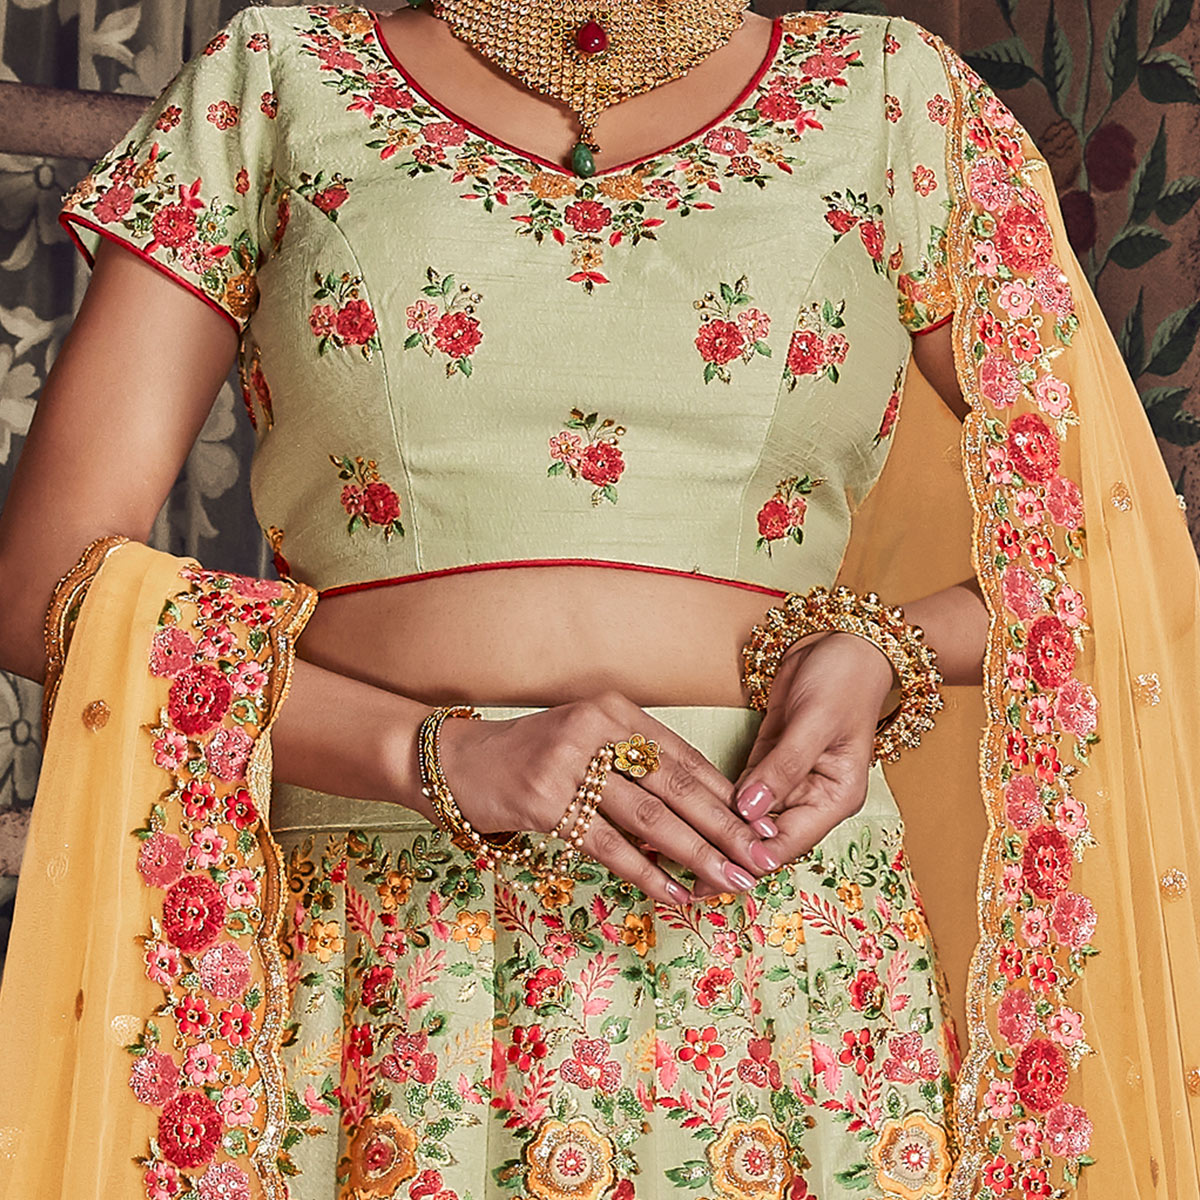 NAKKASHI - Mesmerising Light Green Colored Party Wear Floral Embroidered Raw Silk Saree